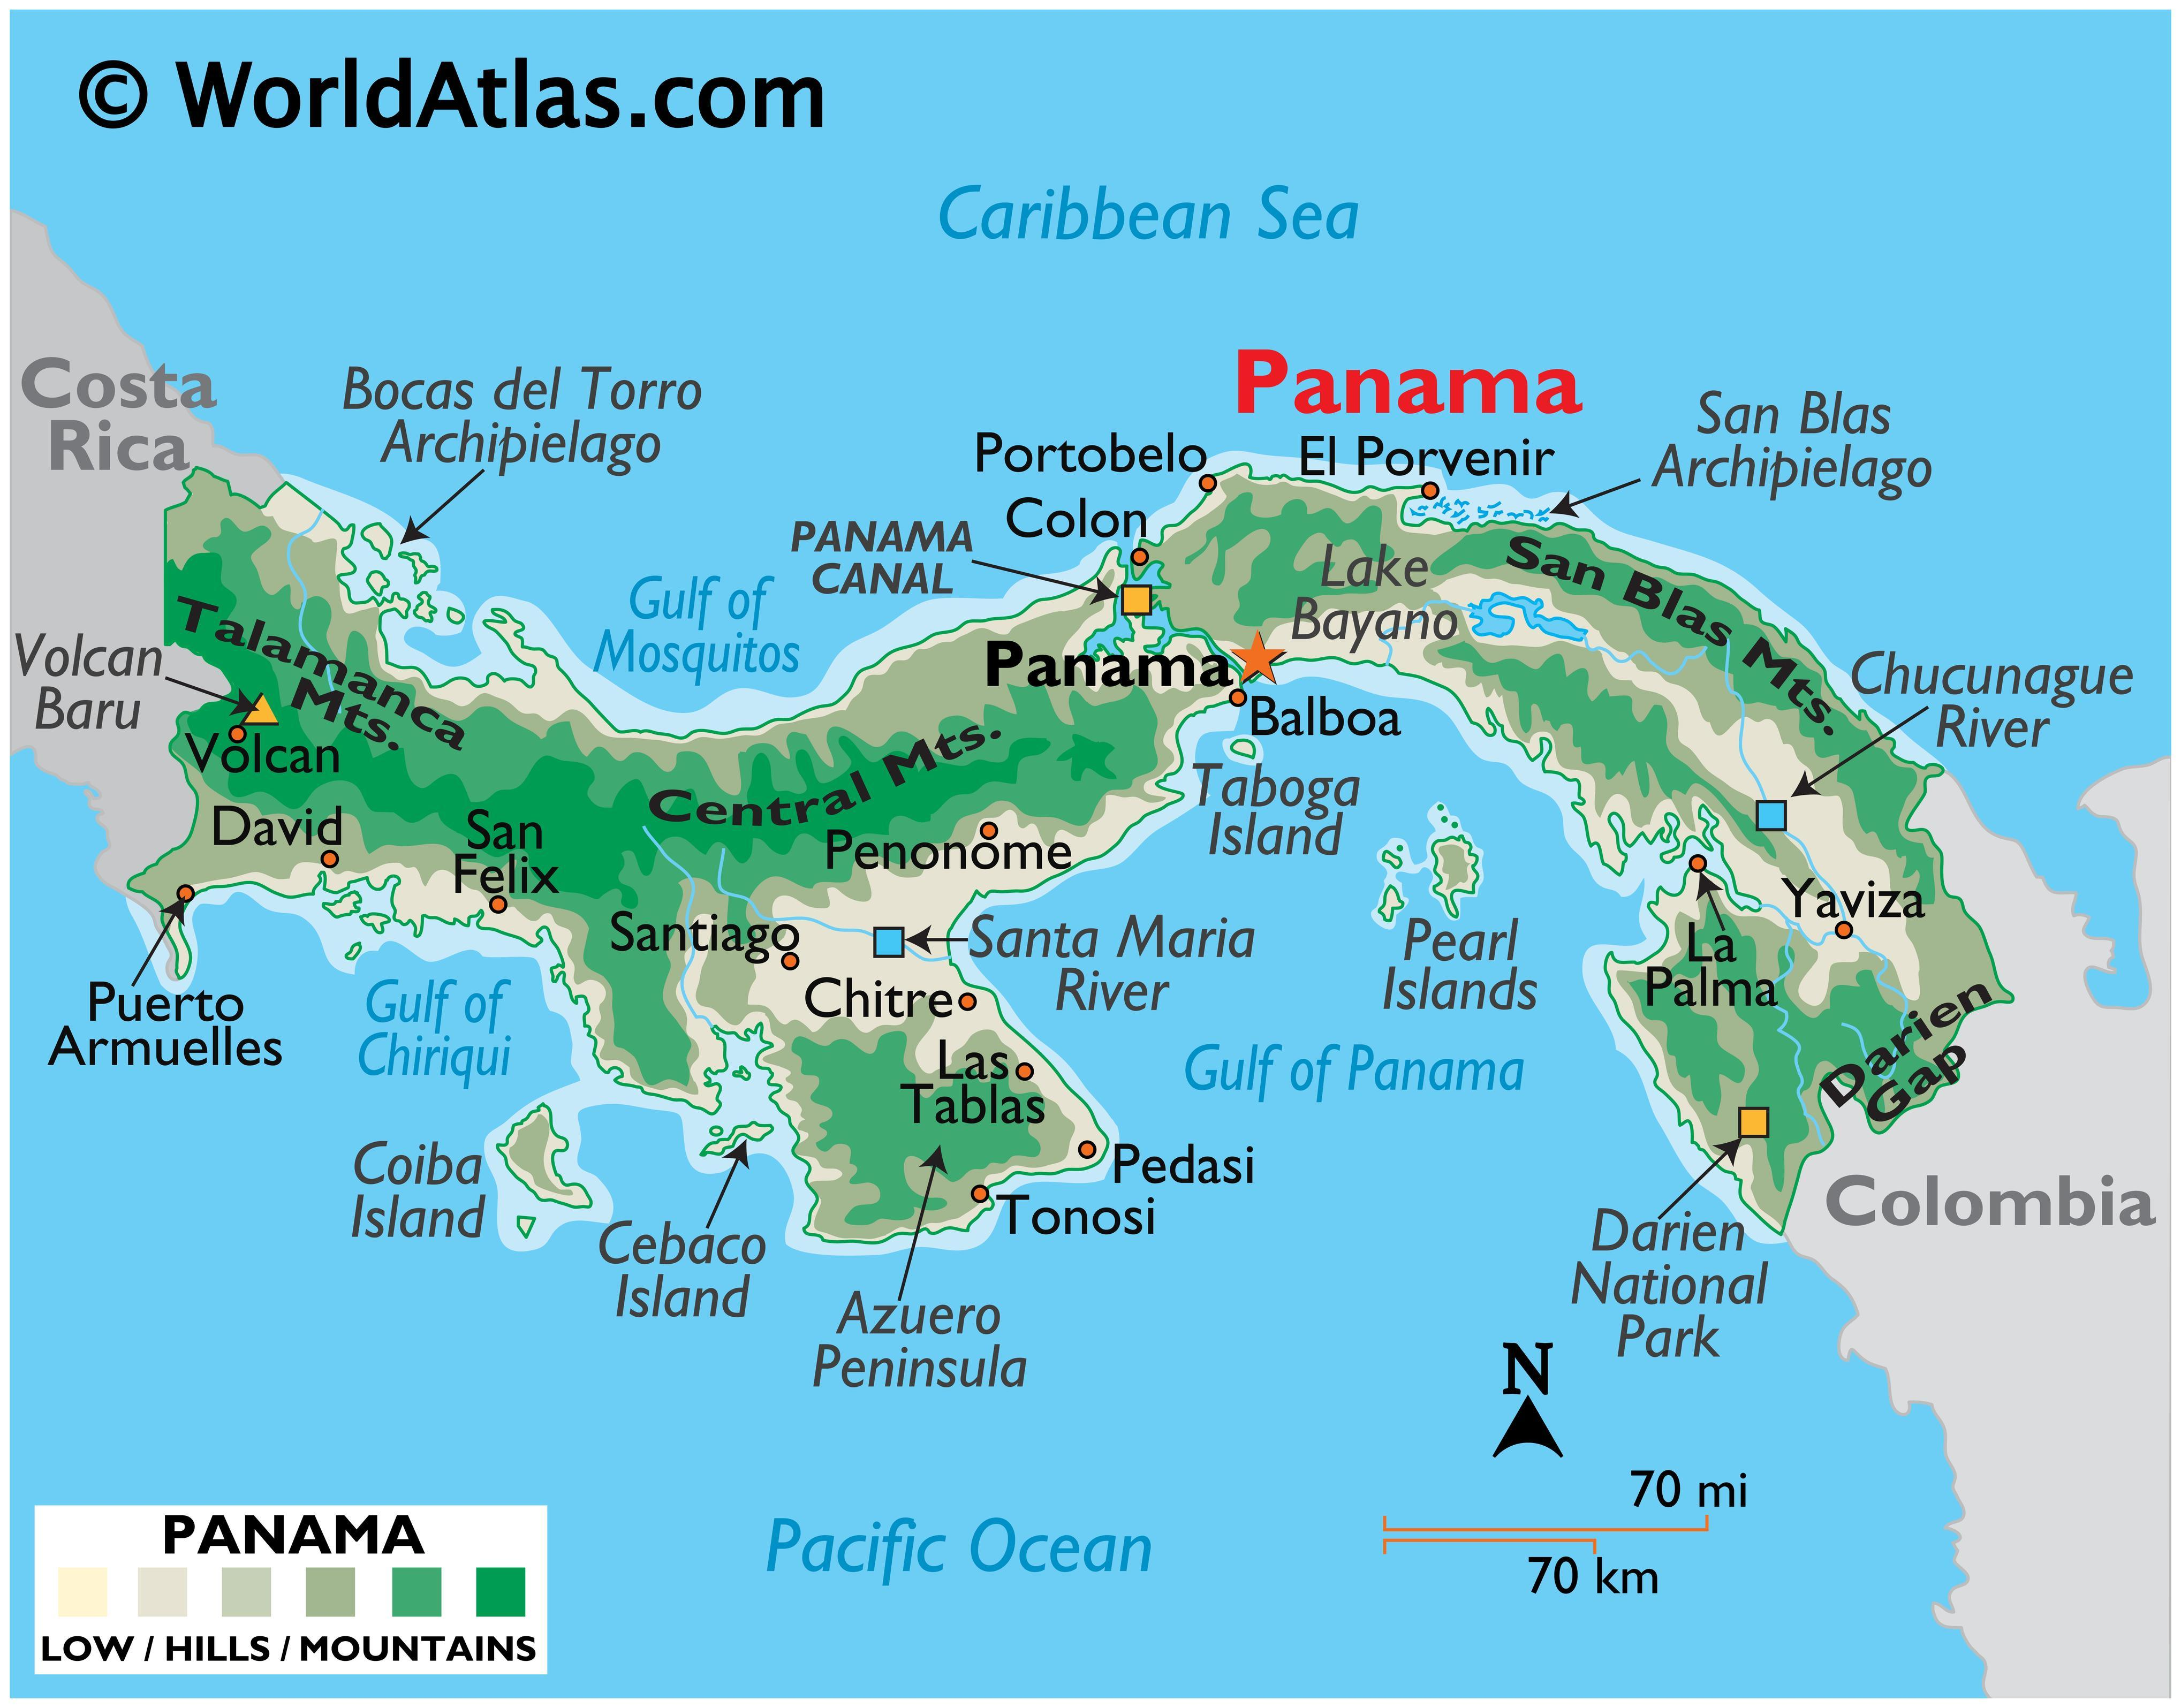 Physical Map of Panama showing terrain, major mountain ranges, extreme points, islands, rivers, lakes, major cities, international boundaries, etc.